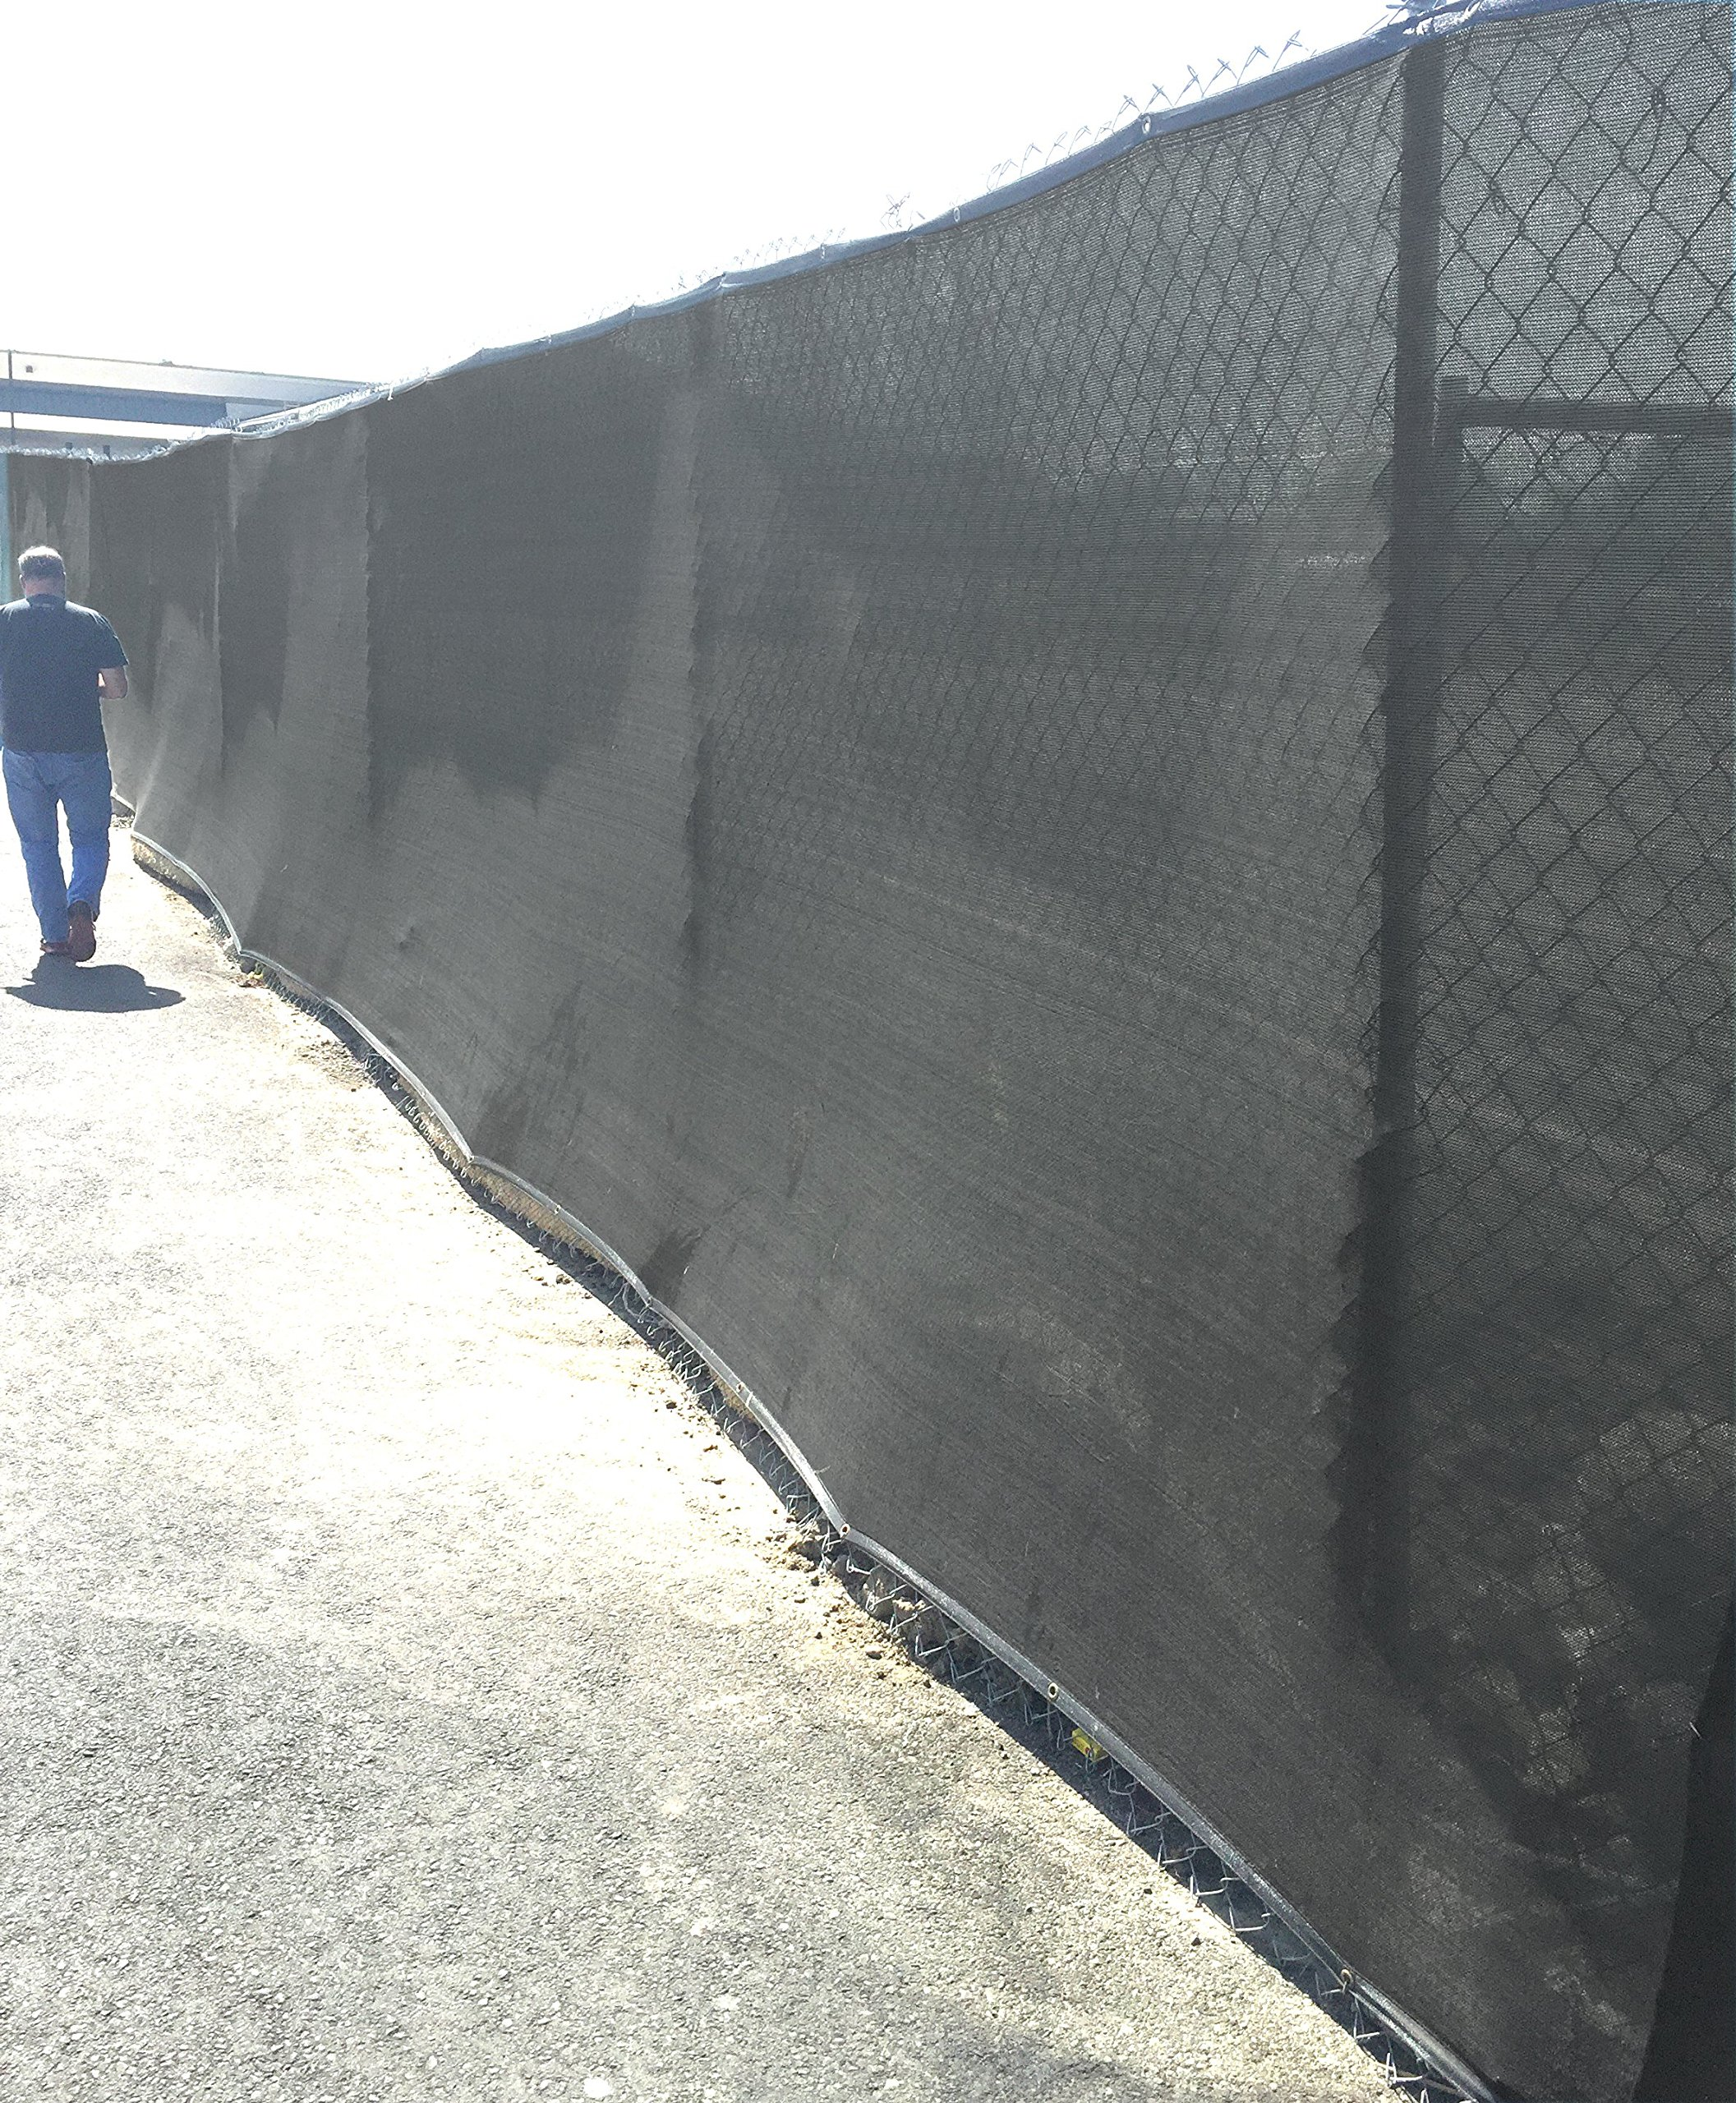 HD-Double Stitched Fence Screen Mesh 8' x 50' (EXTRA LONG) Shade For Fence Cover(Black)